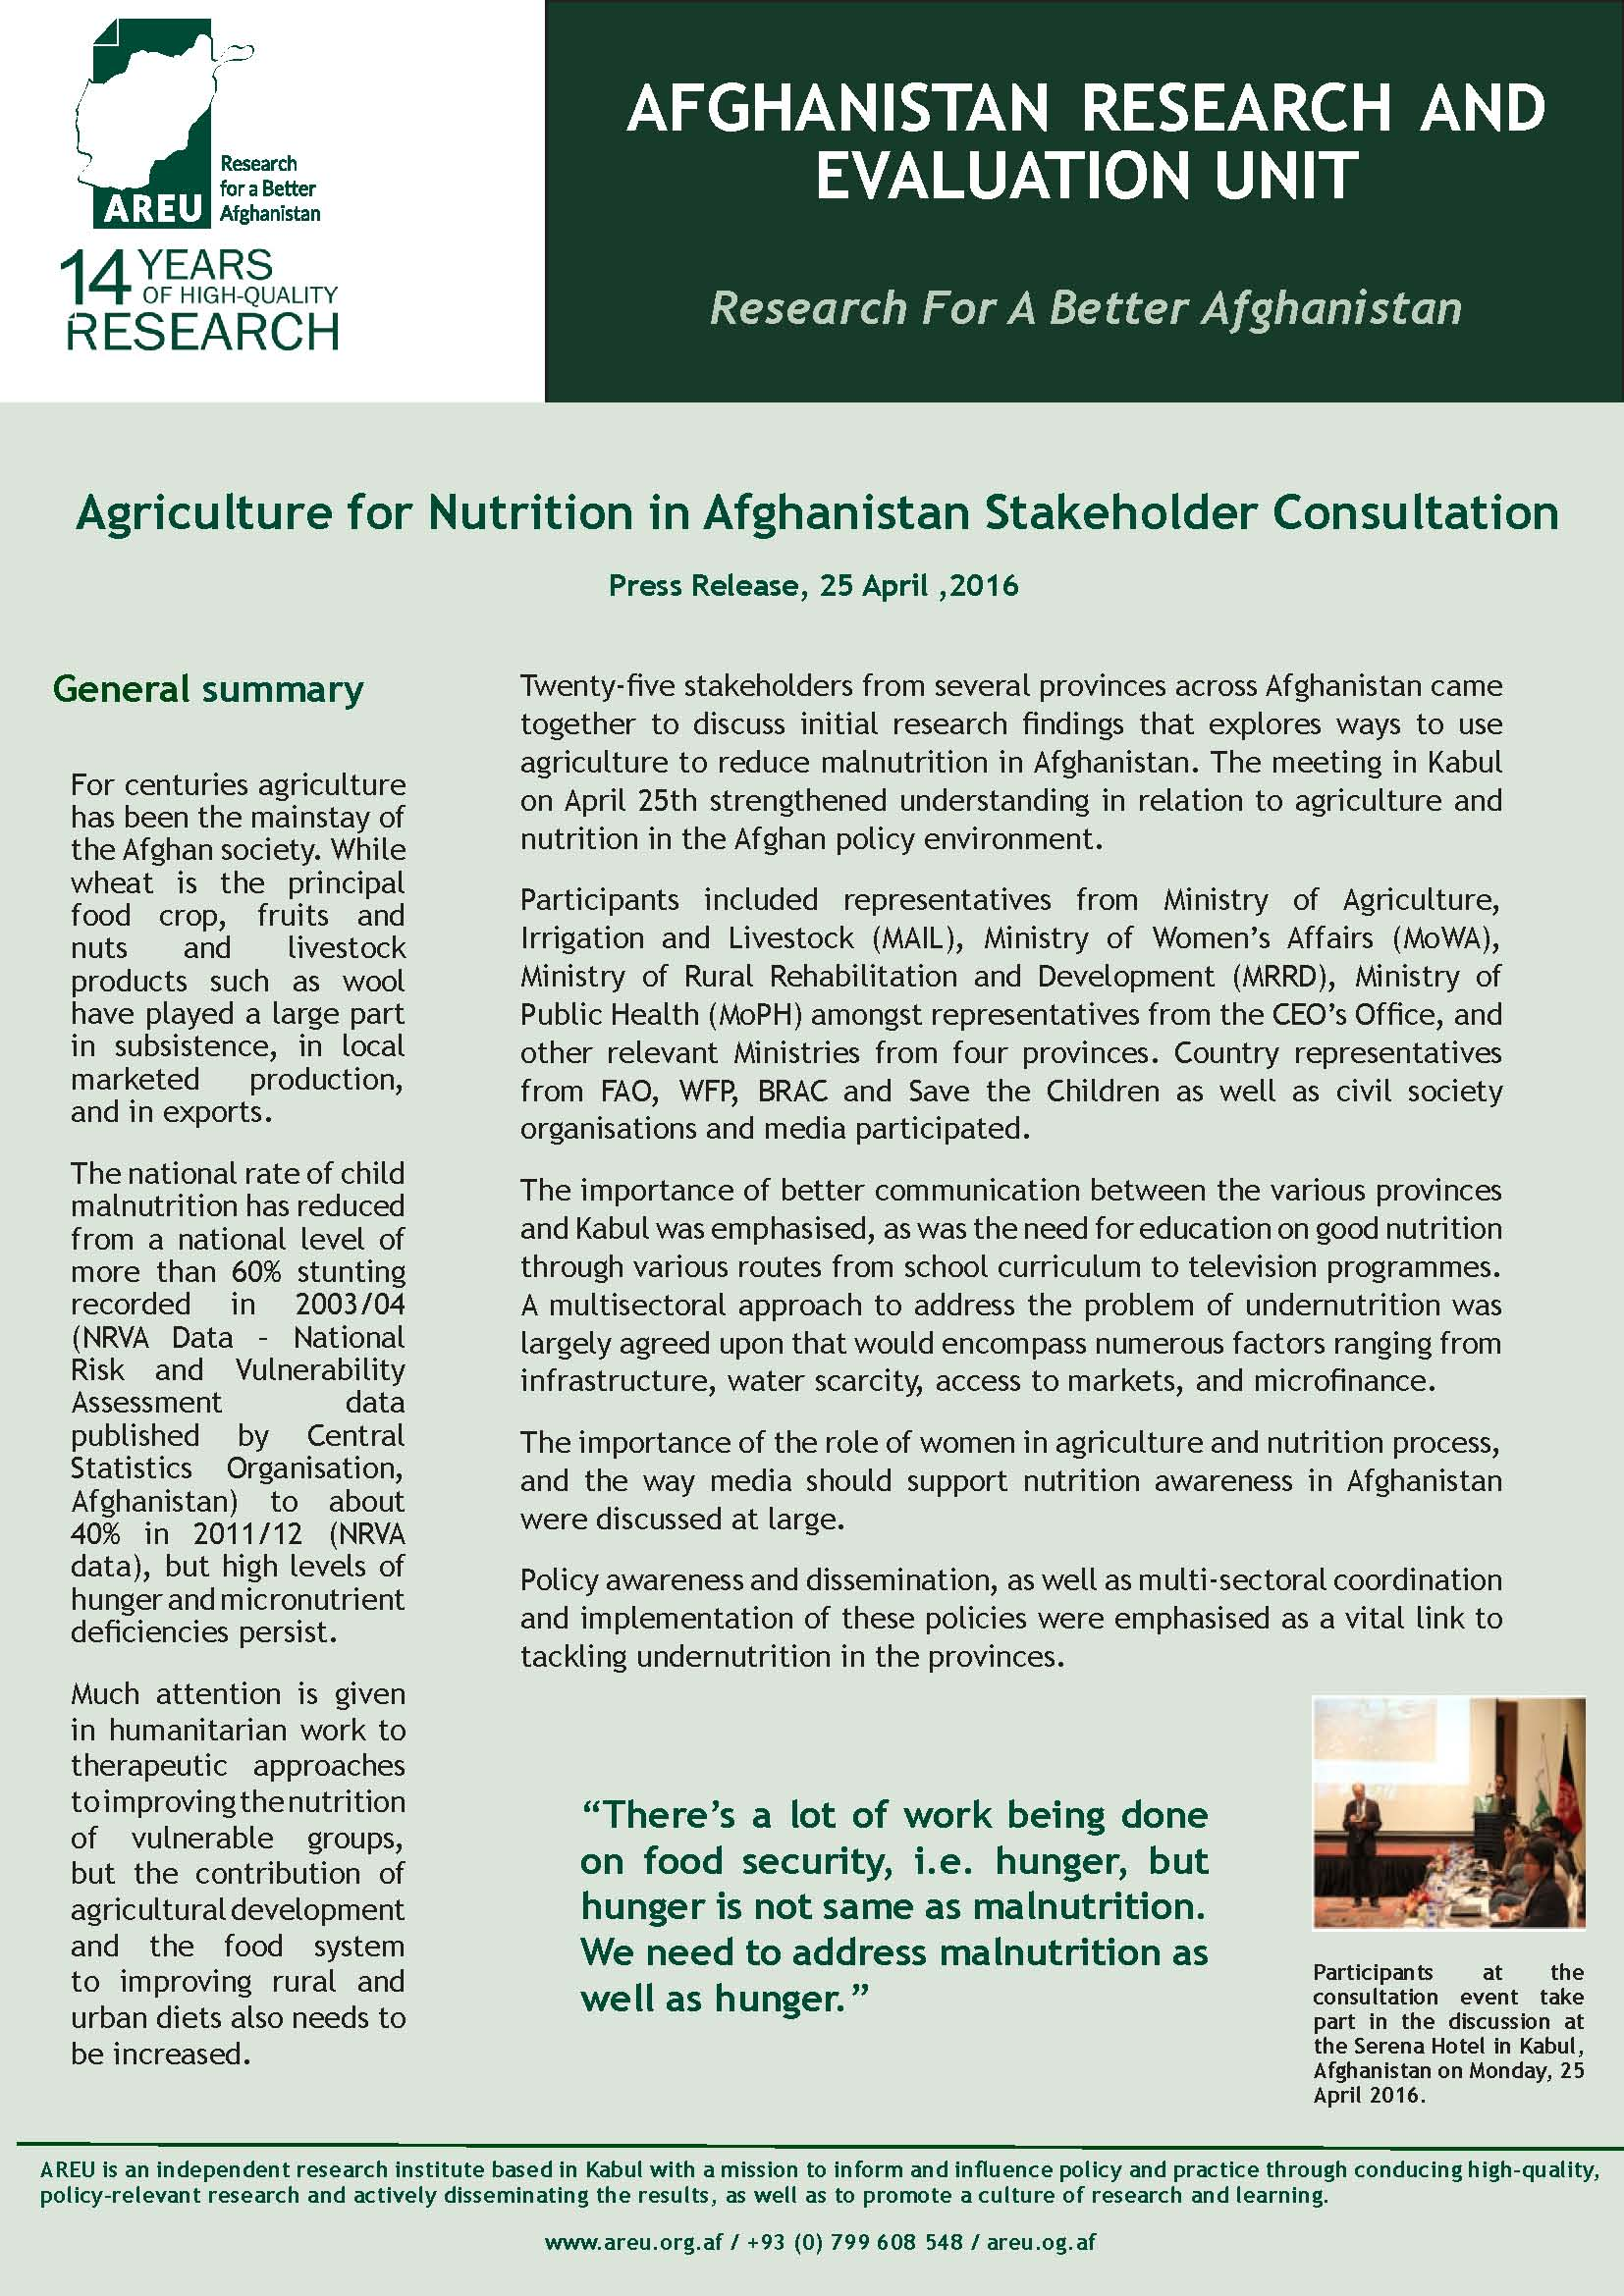 1609 Press Release- Agriculture for Nutrition in Afghanistan